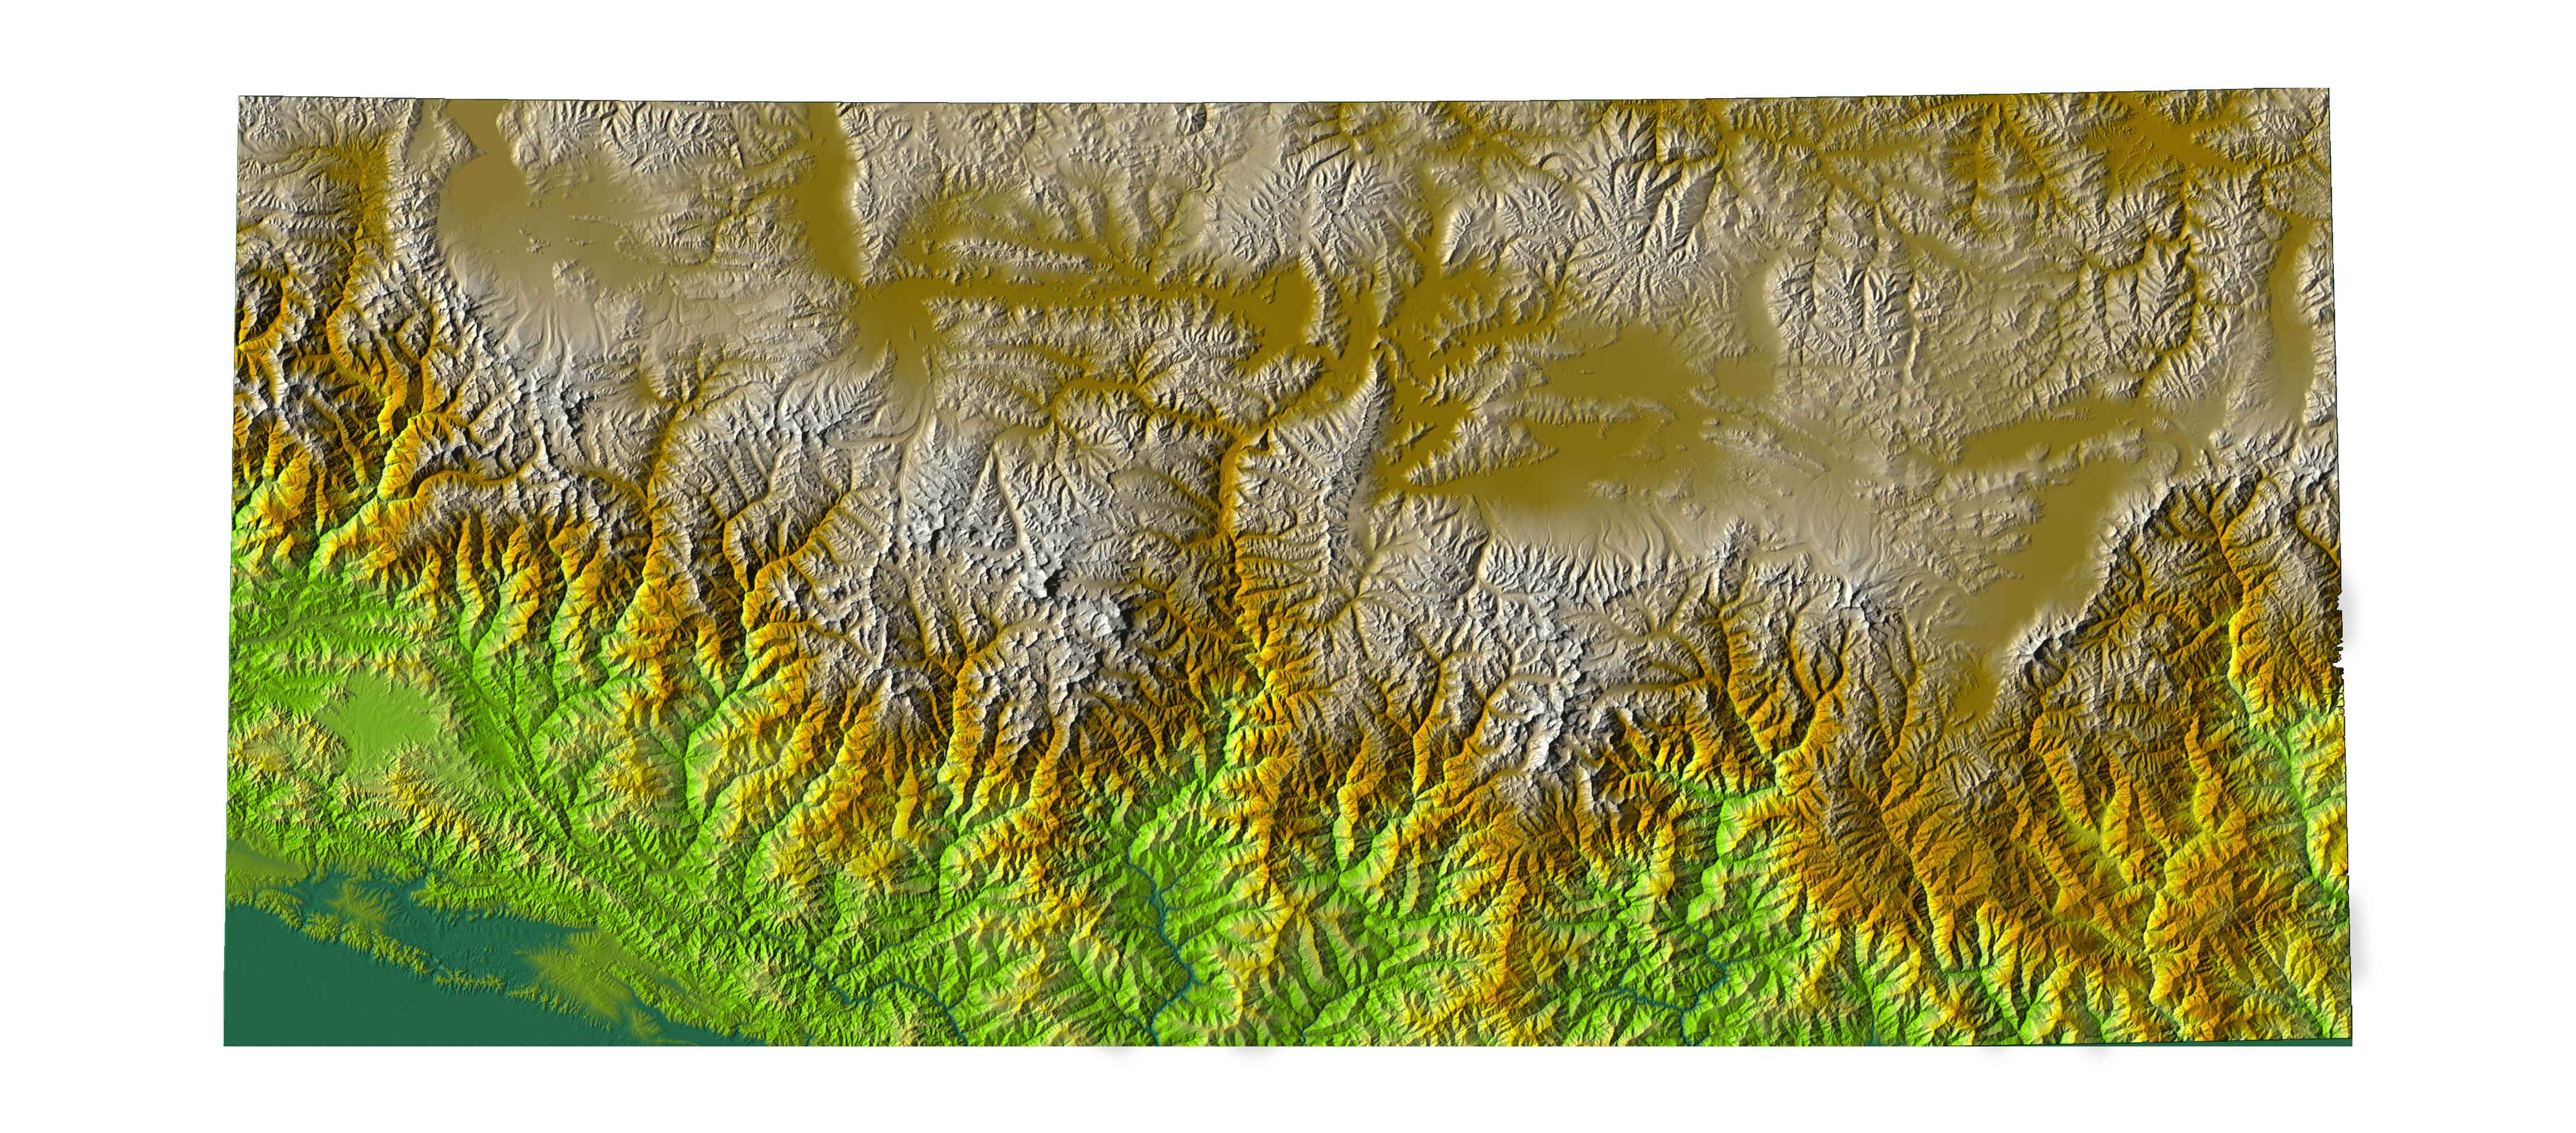 Digital elevation data with srtm voids filled using accurate from n28e085 to n29e089 has been created by rafal jonca of poland using 3dem to convert the data downloadable from this page to m files gumiabroncs Choice Image